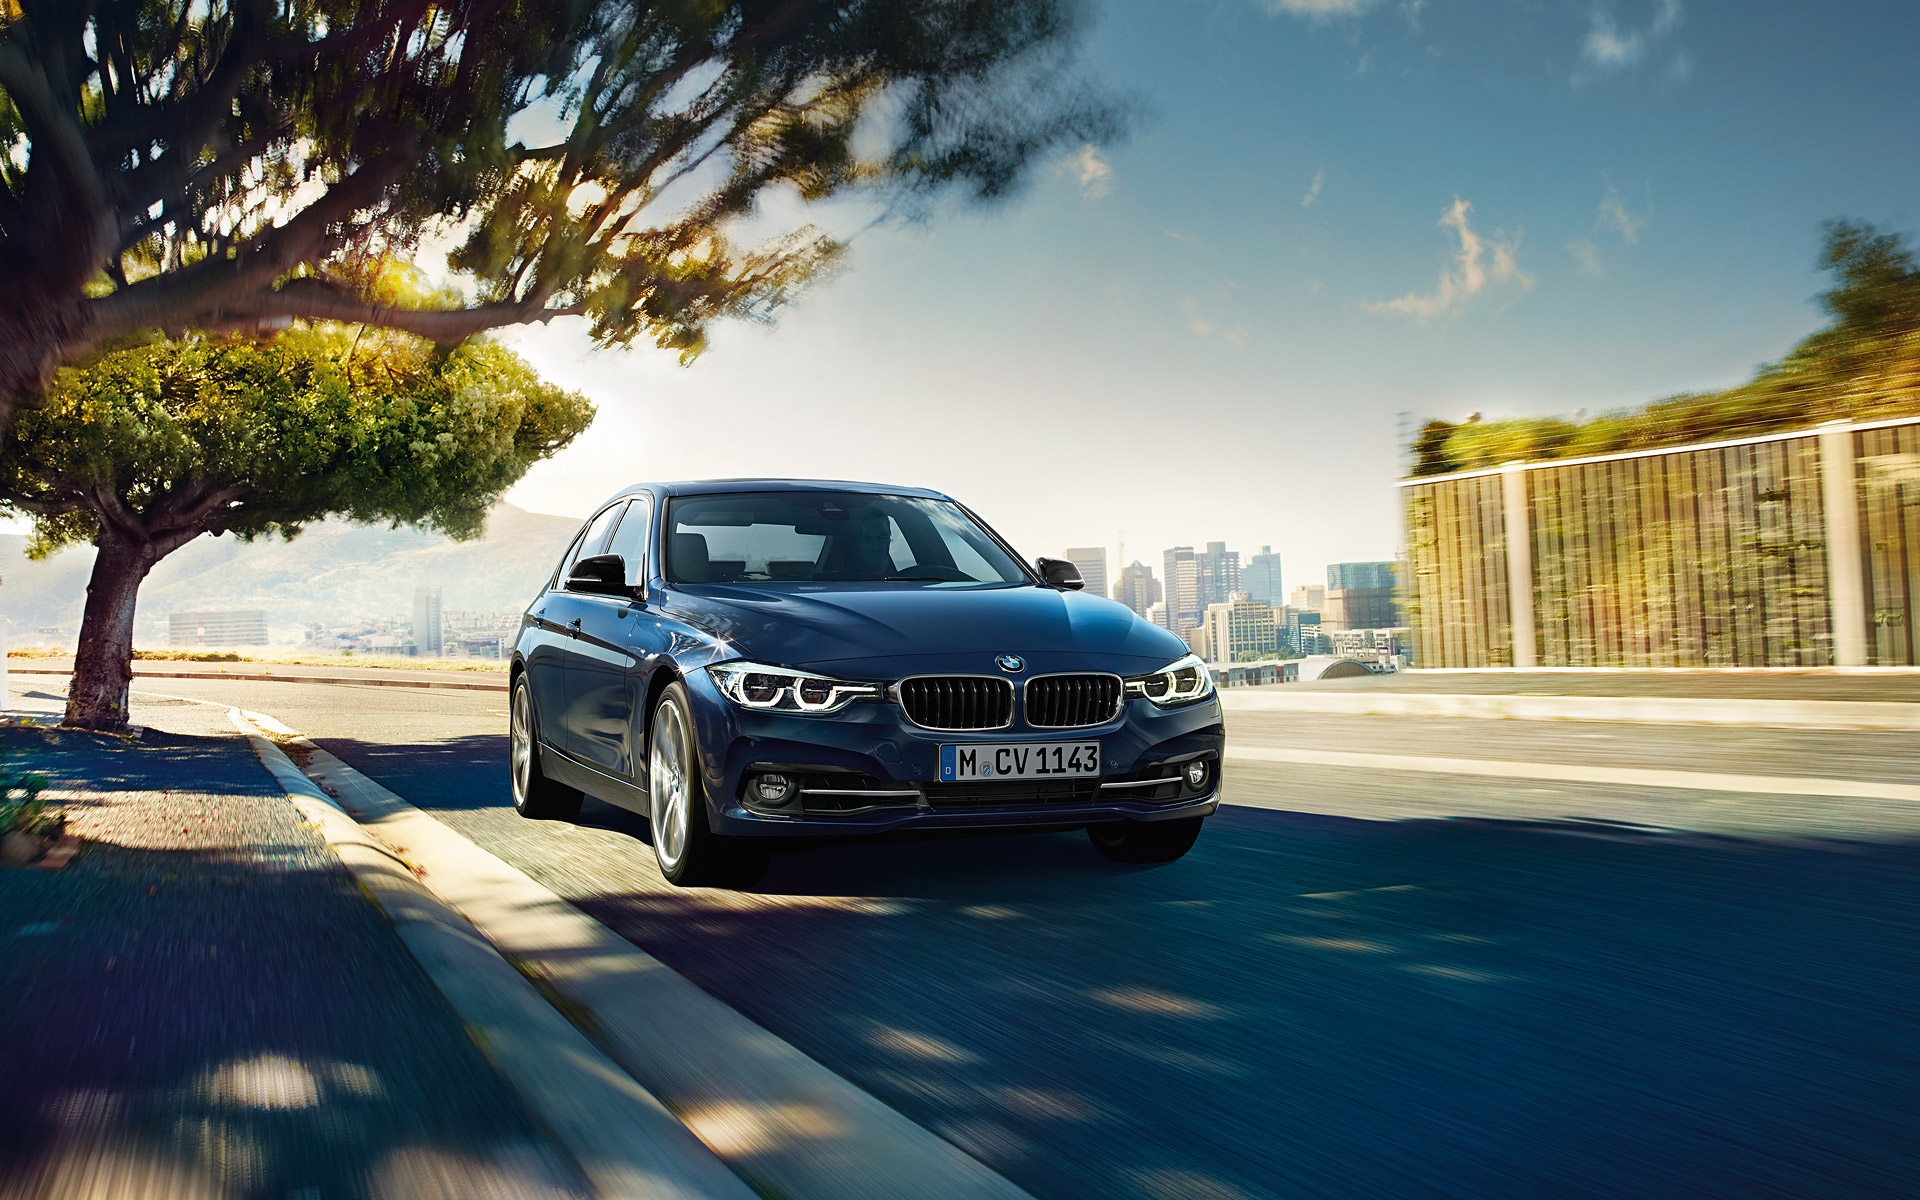 BMW 3 Series Sedan Front View city driving